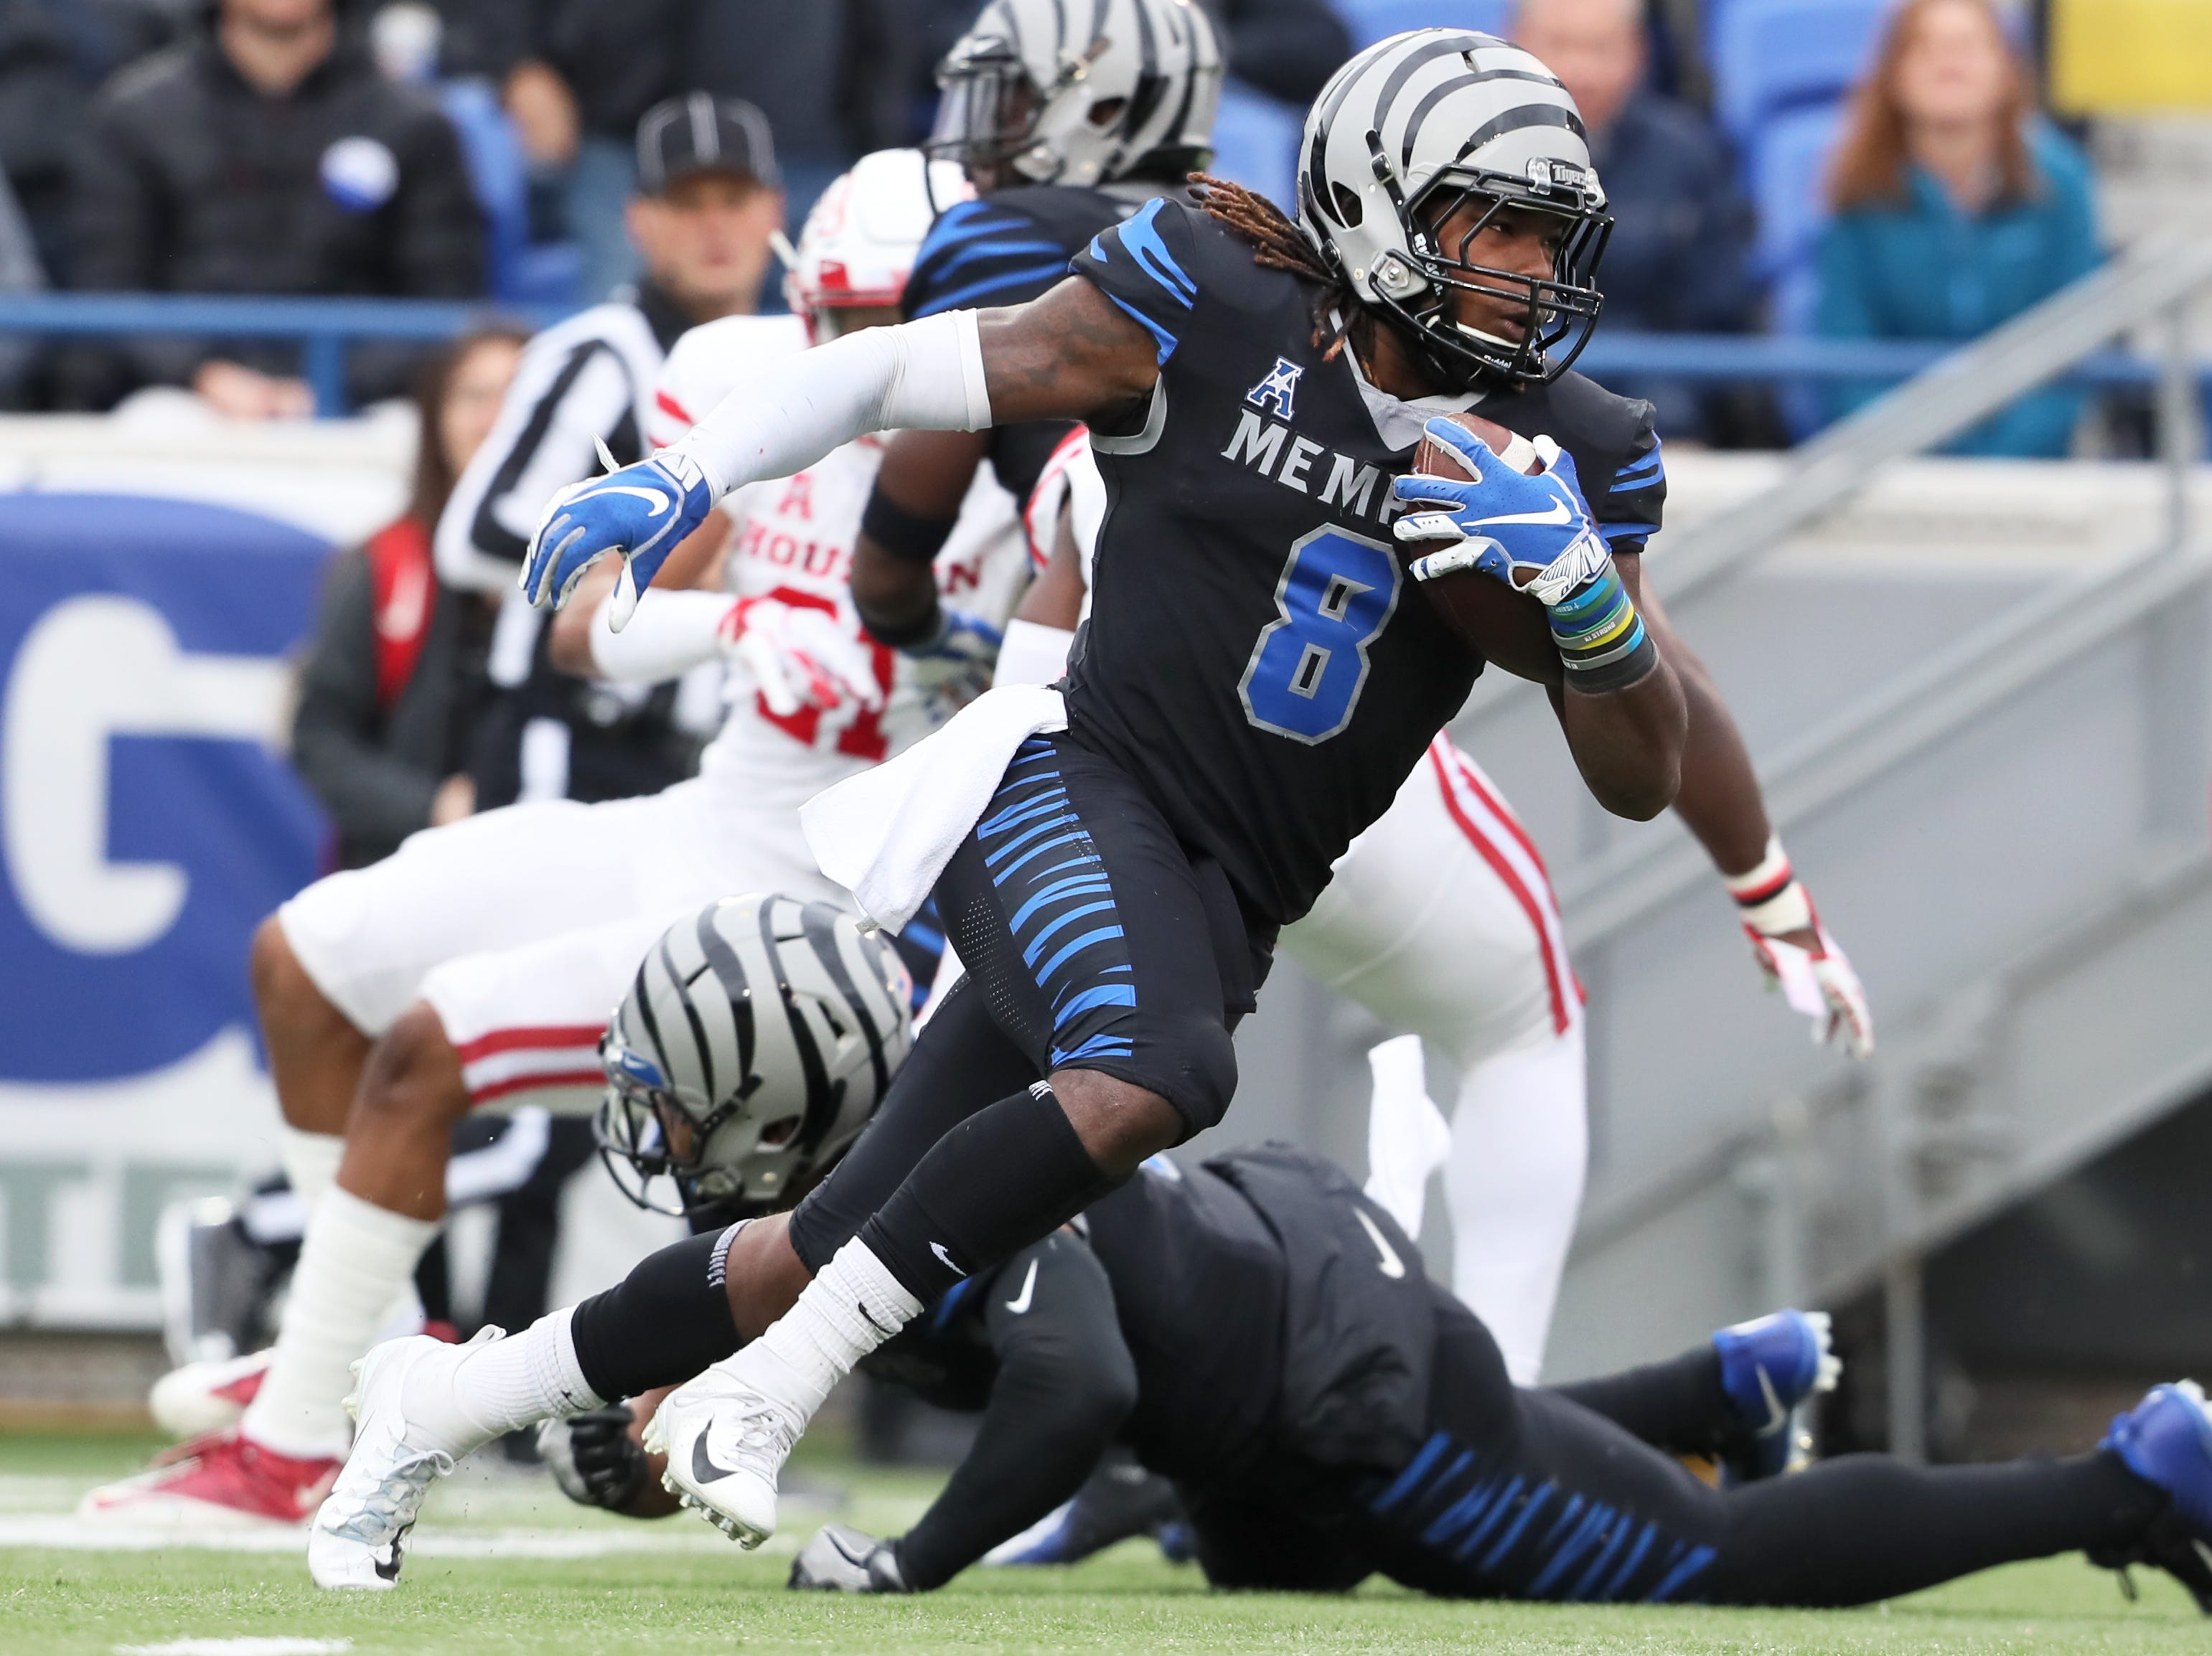 Memphis Tigers' Darrell Henderson runs the ball against the Houston Cougars at the Liberty Bowl on Friday, Nov. 23, 2018.